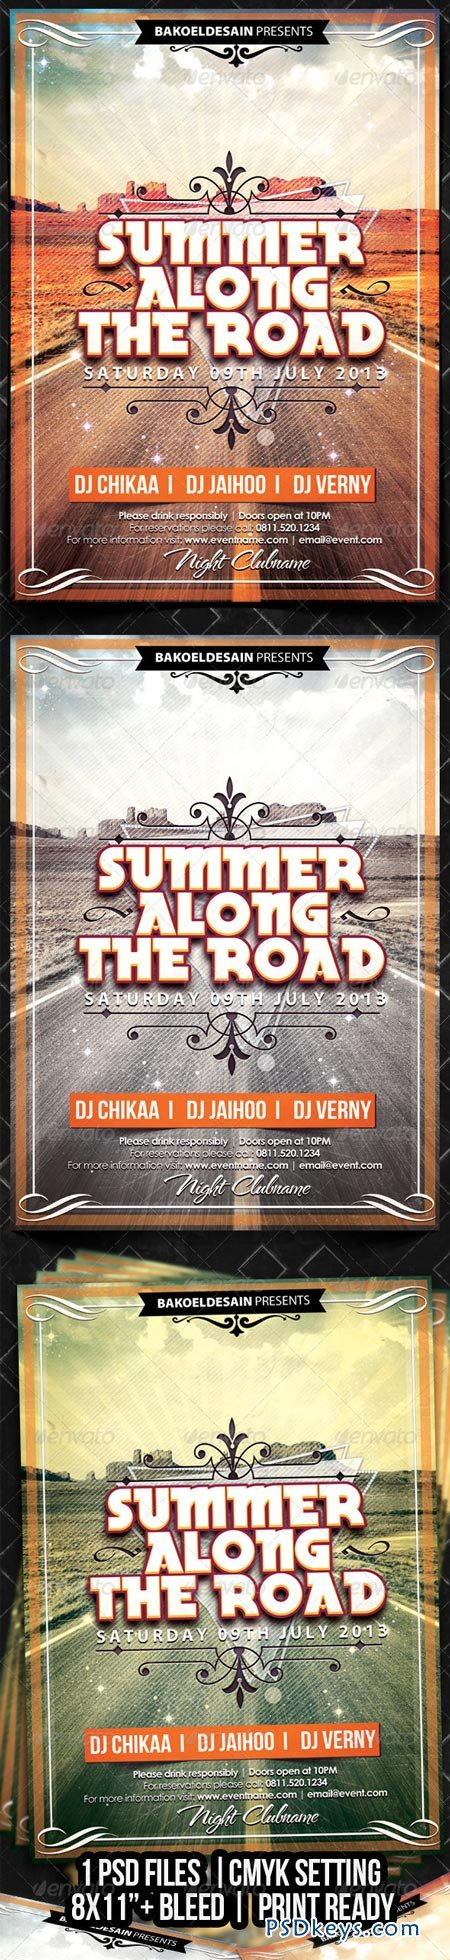 Summer Along The Road Flyer 4916251